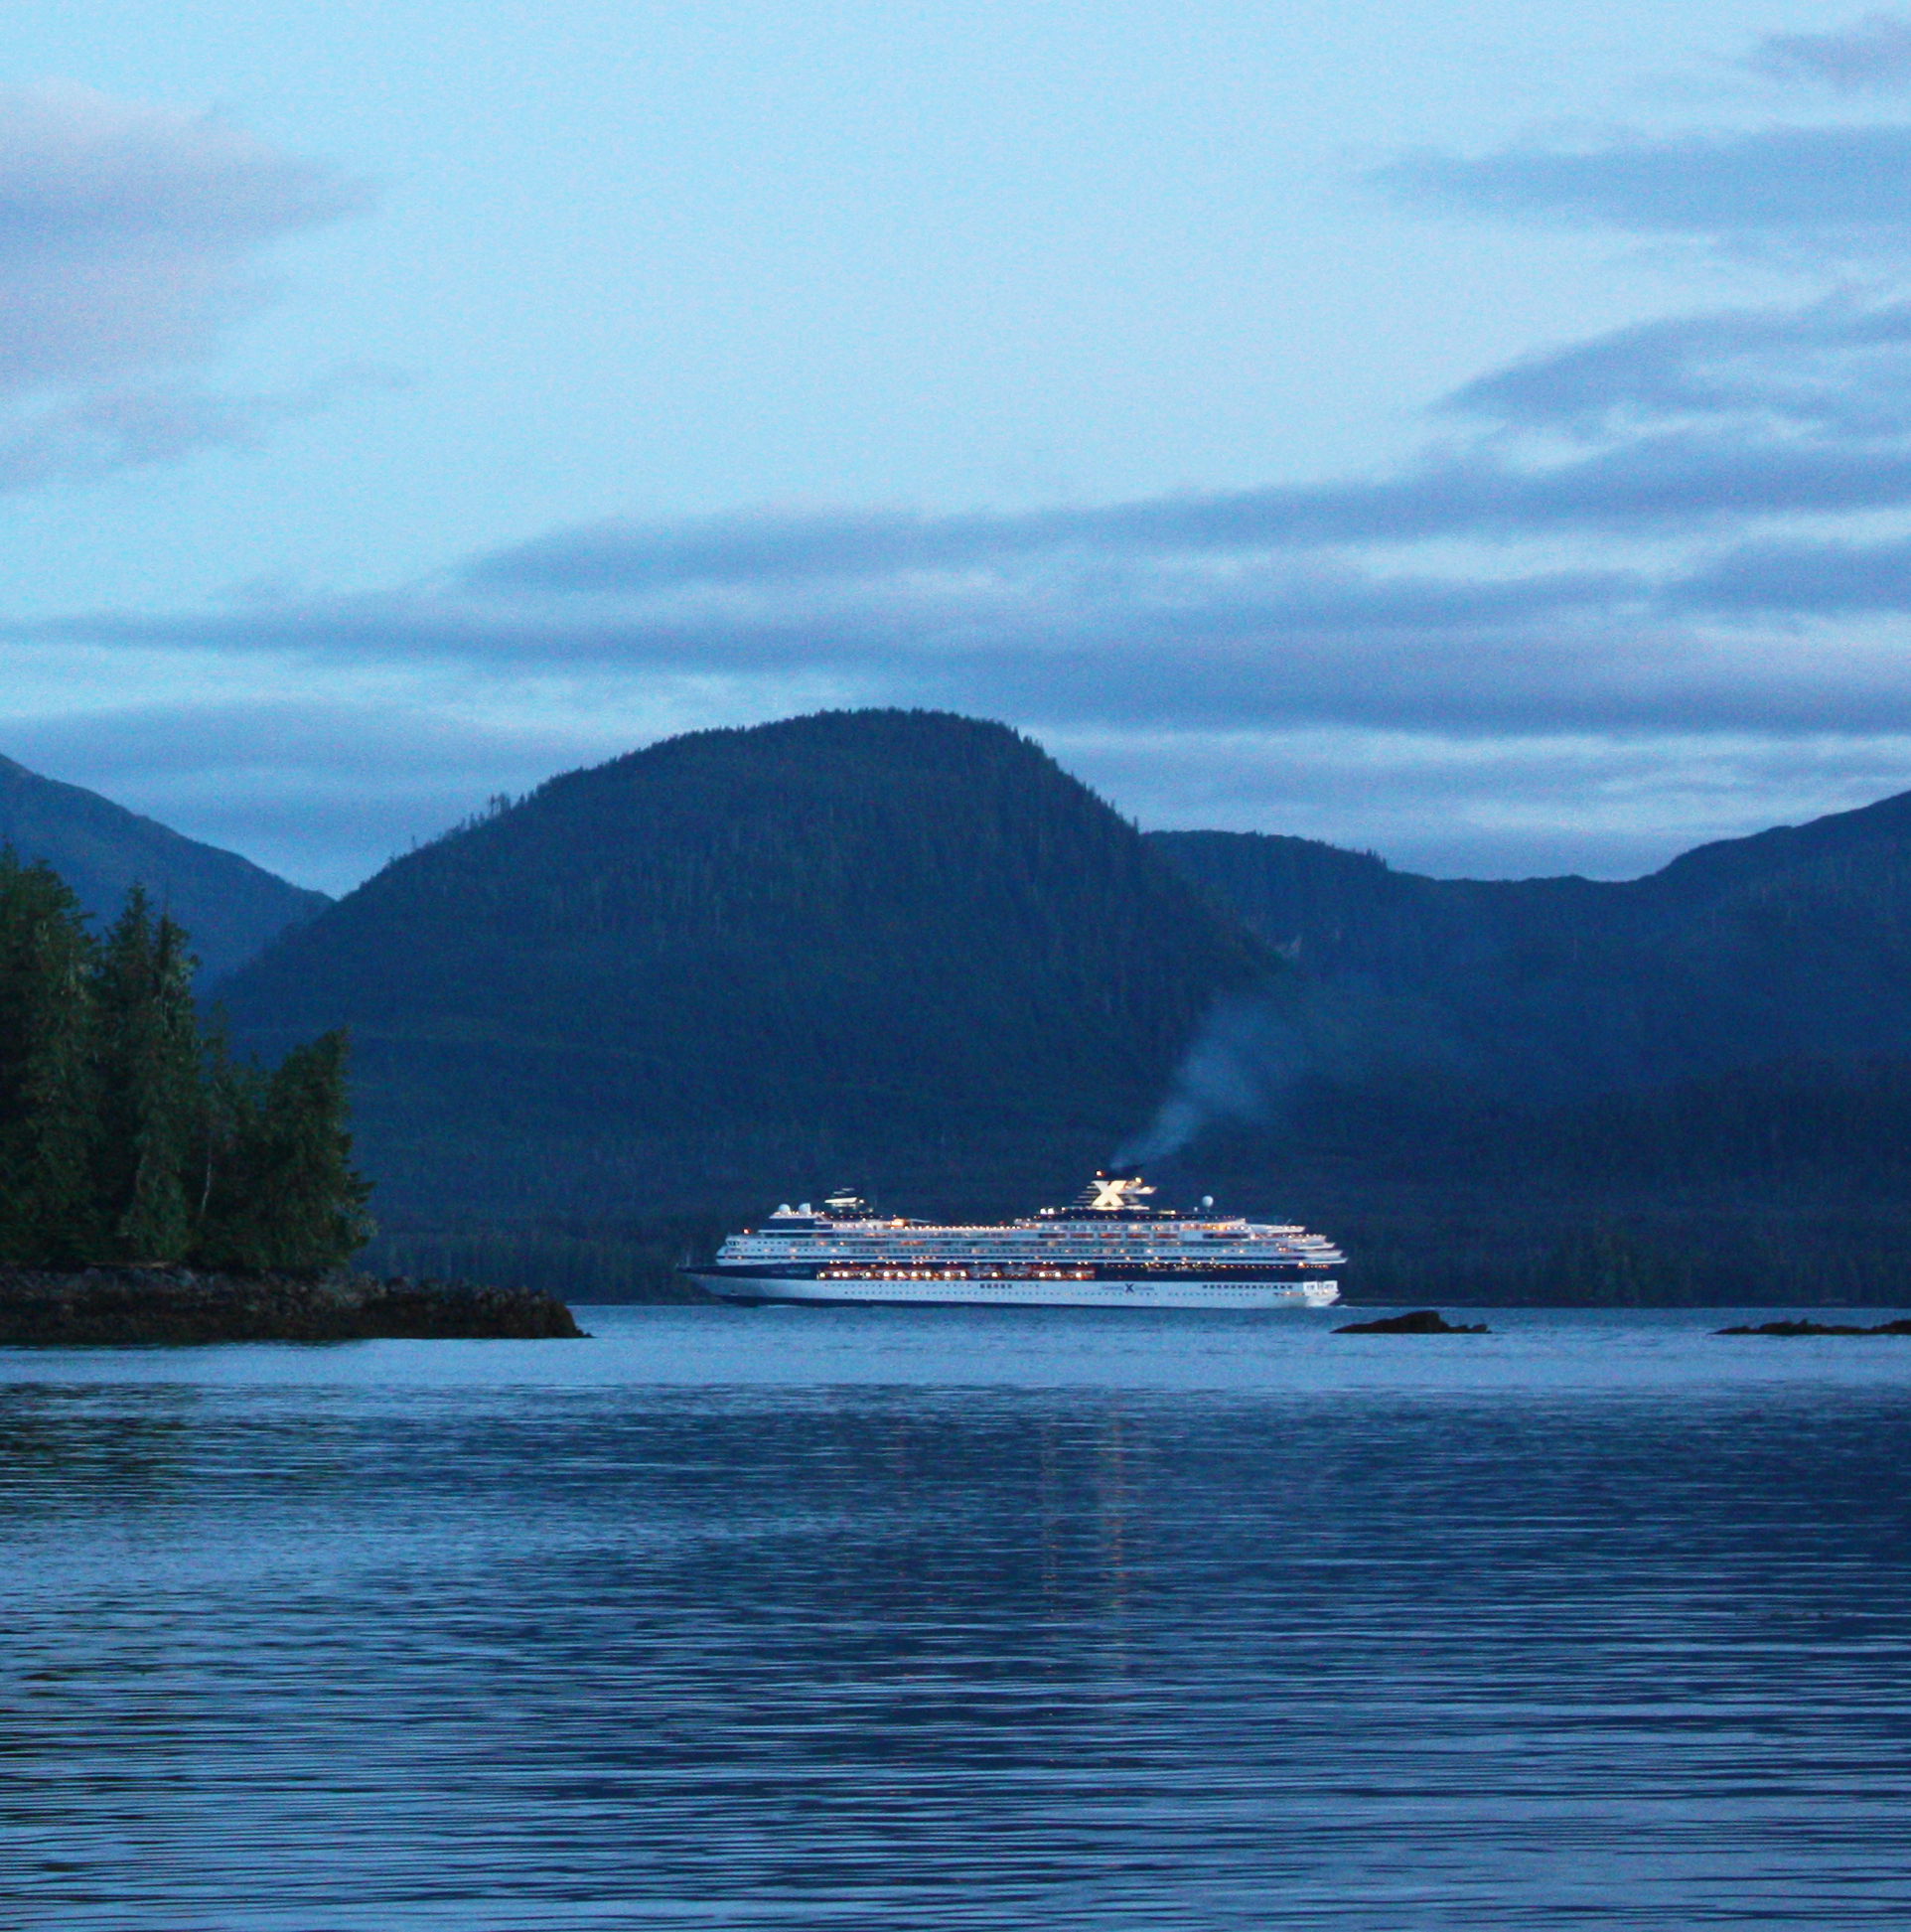 Celebrity cruise ship headed south along the Inside Passage from Ketchikan, Alaska.